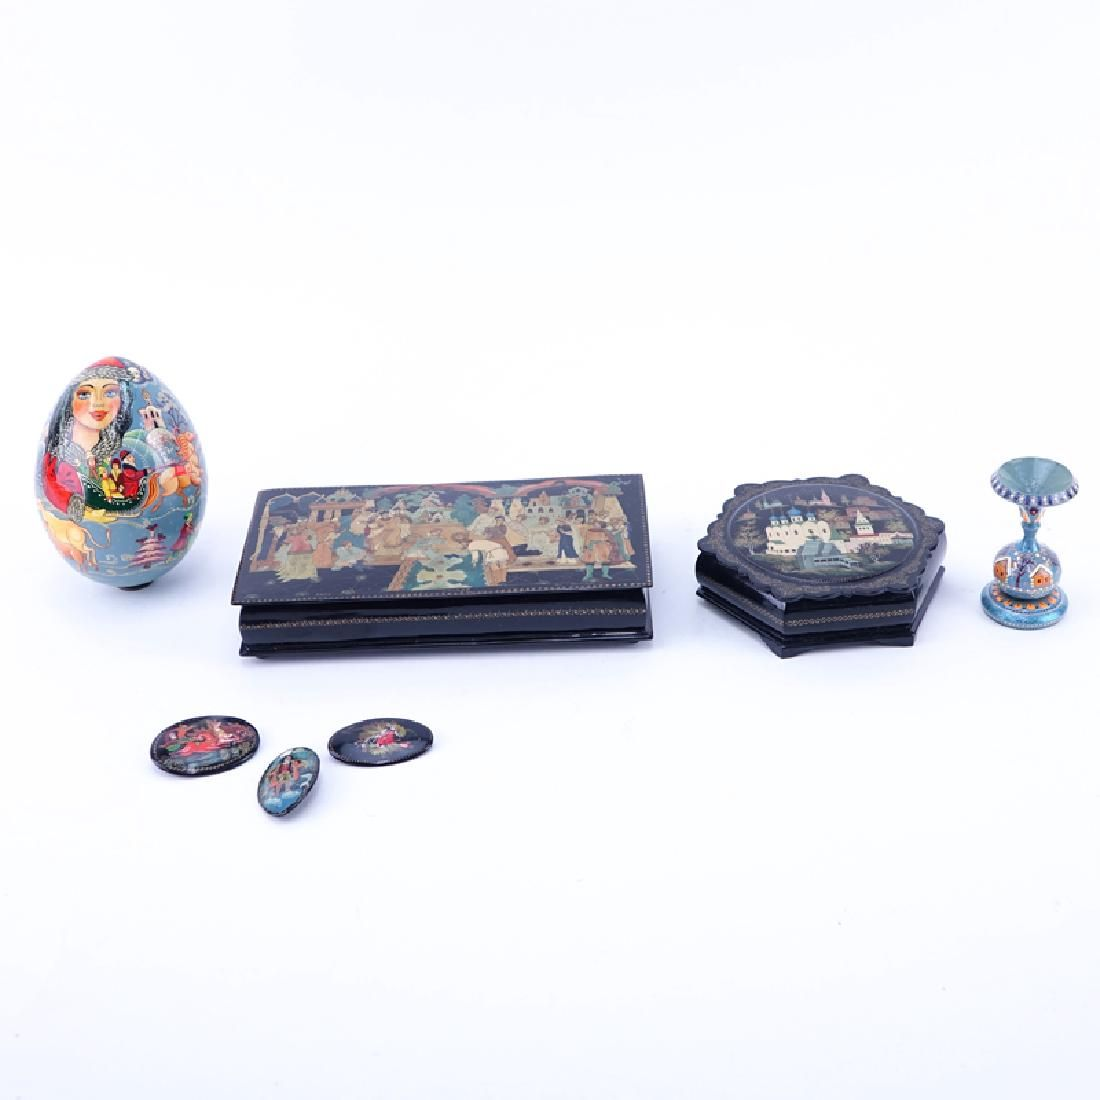 Collection of Six (6) Russian Lacquer Paper Mache